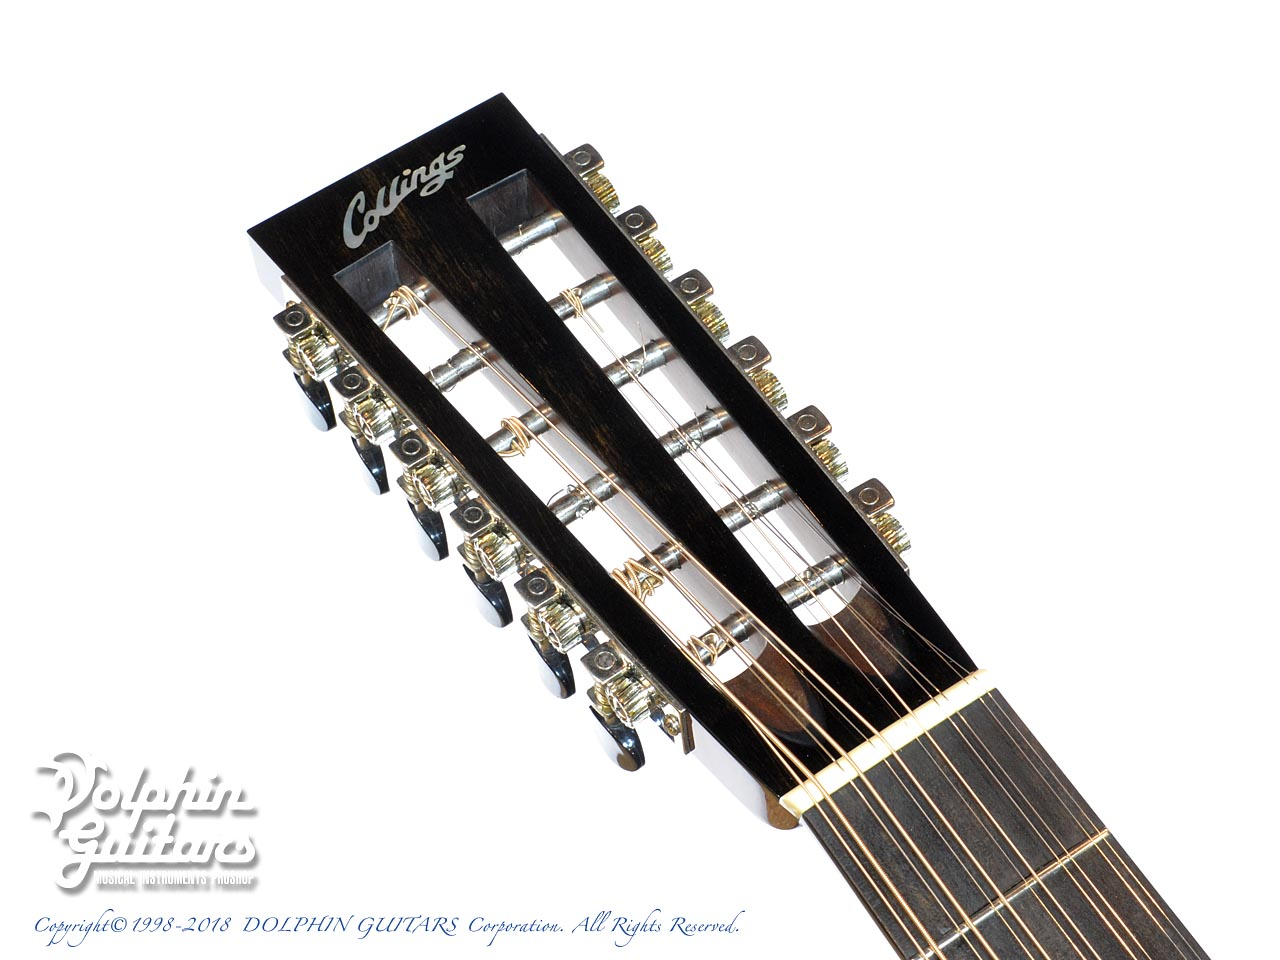 COLLINGS: 0-1 12strings (6)